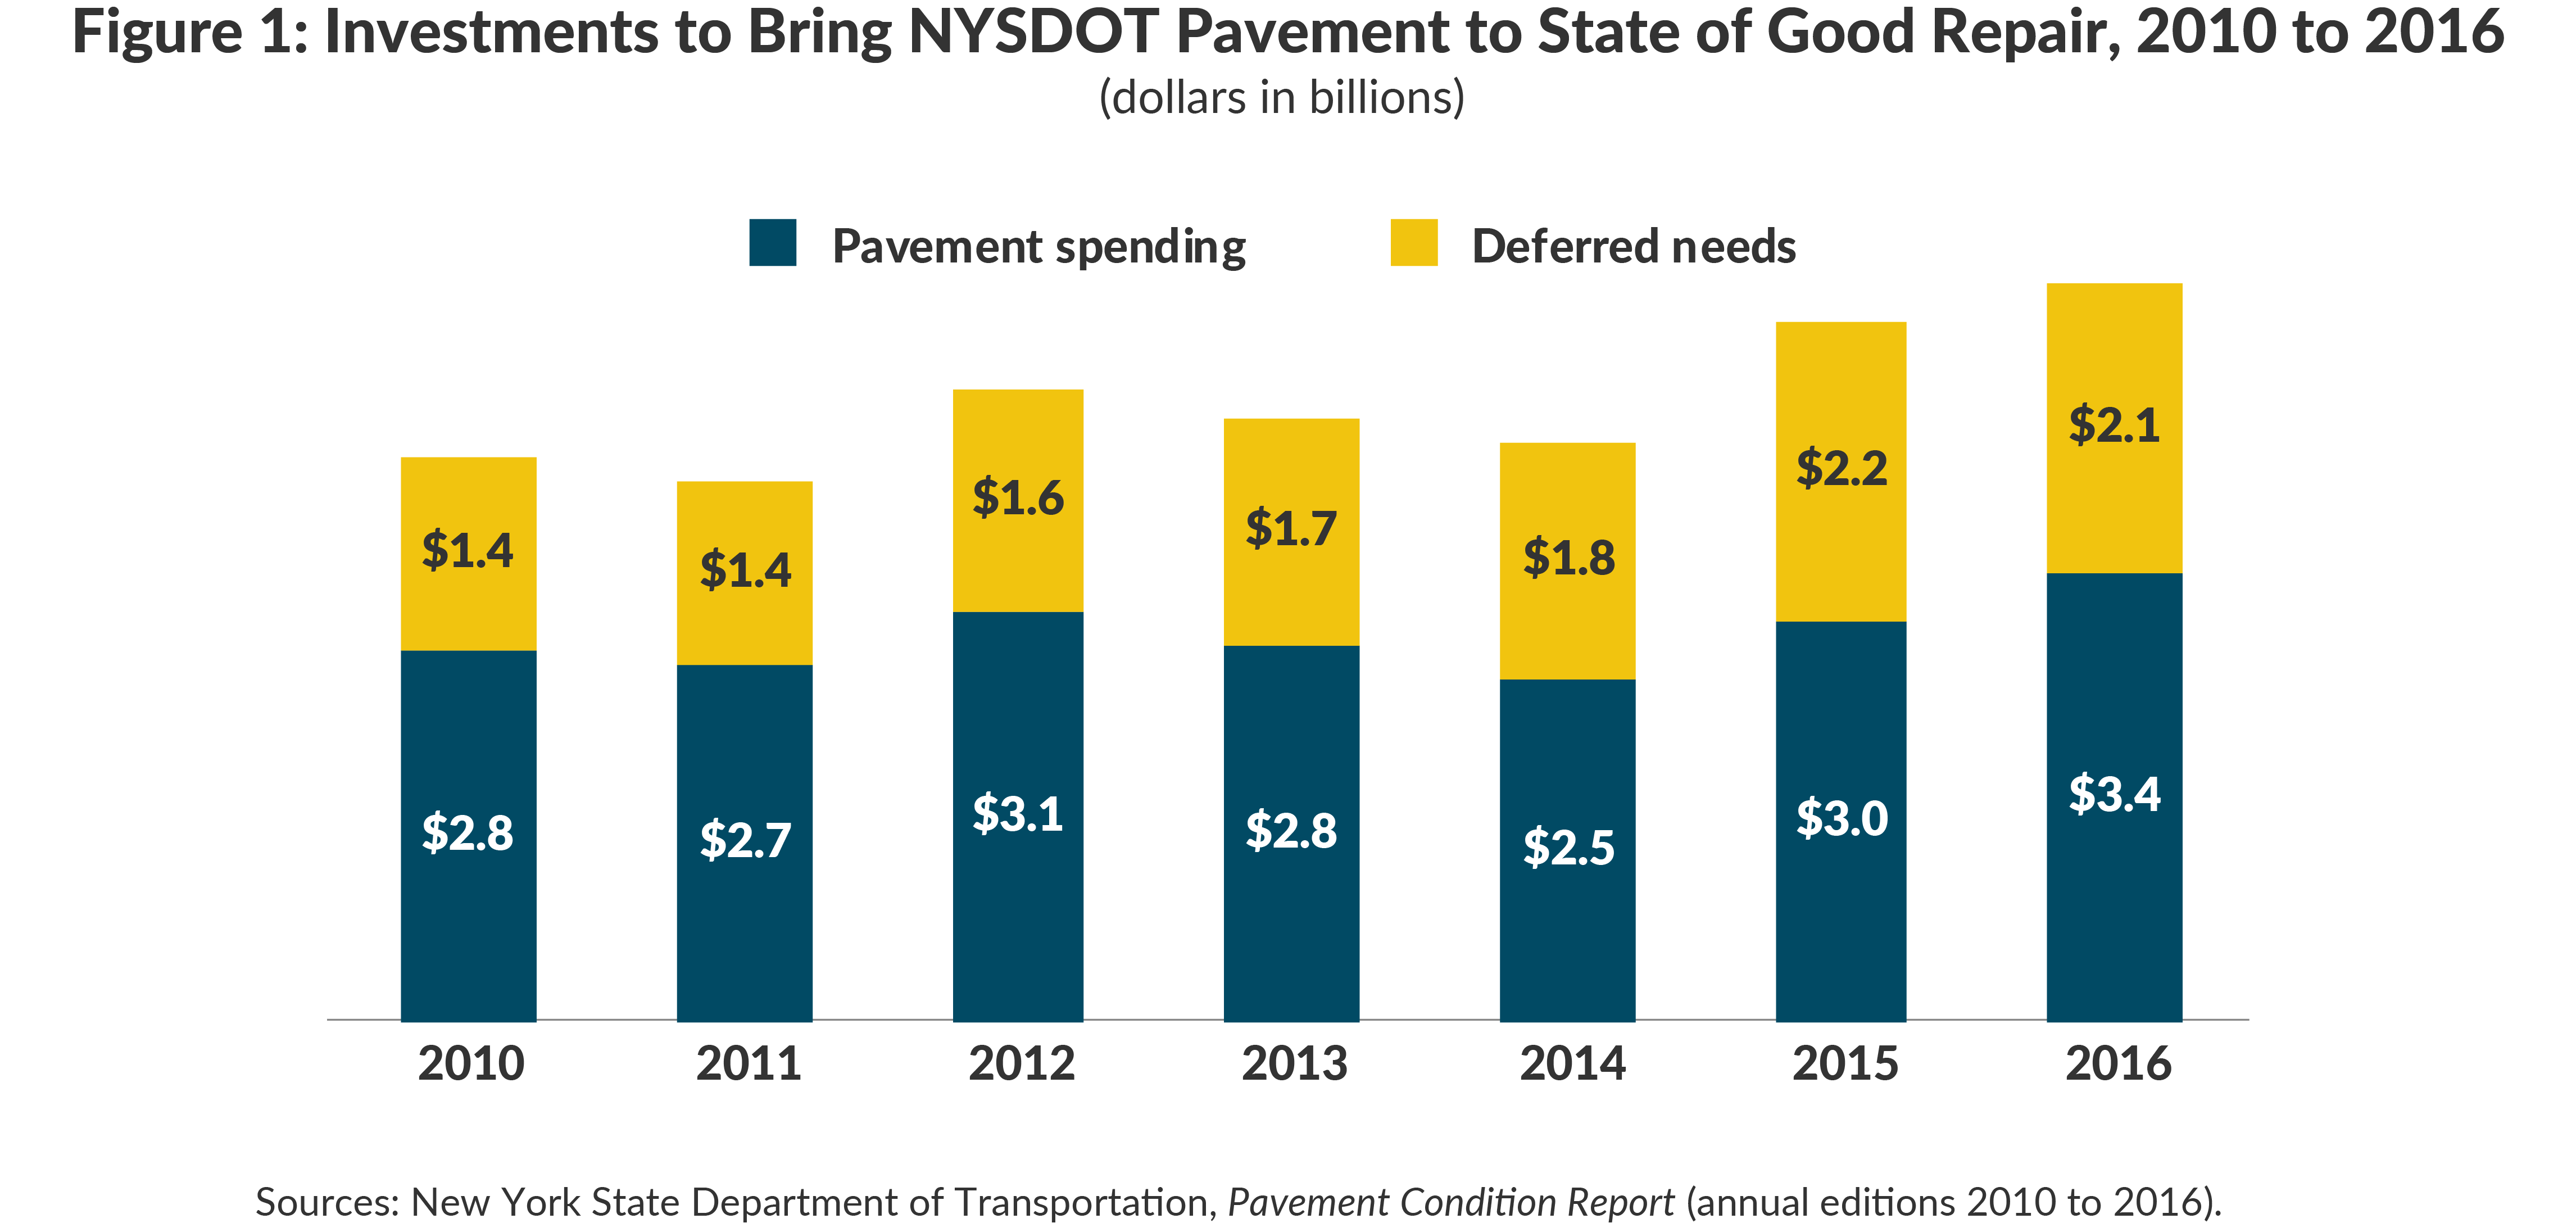 Figure 1: Investments to Bring NYSDOT Pavement to SGR, 2010 to 2016